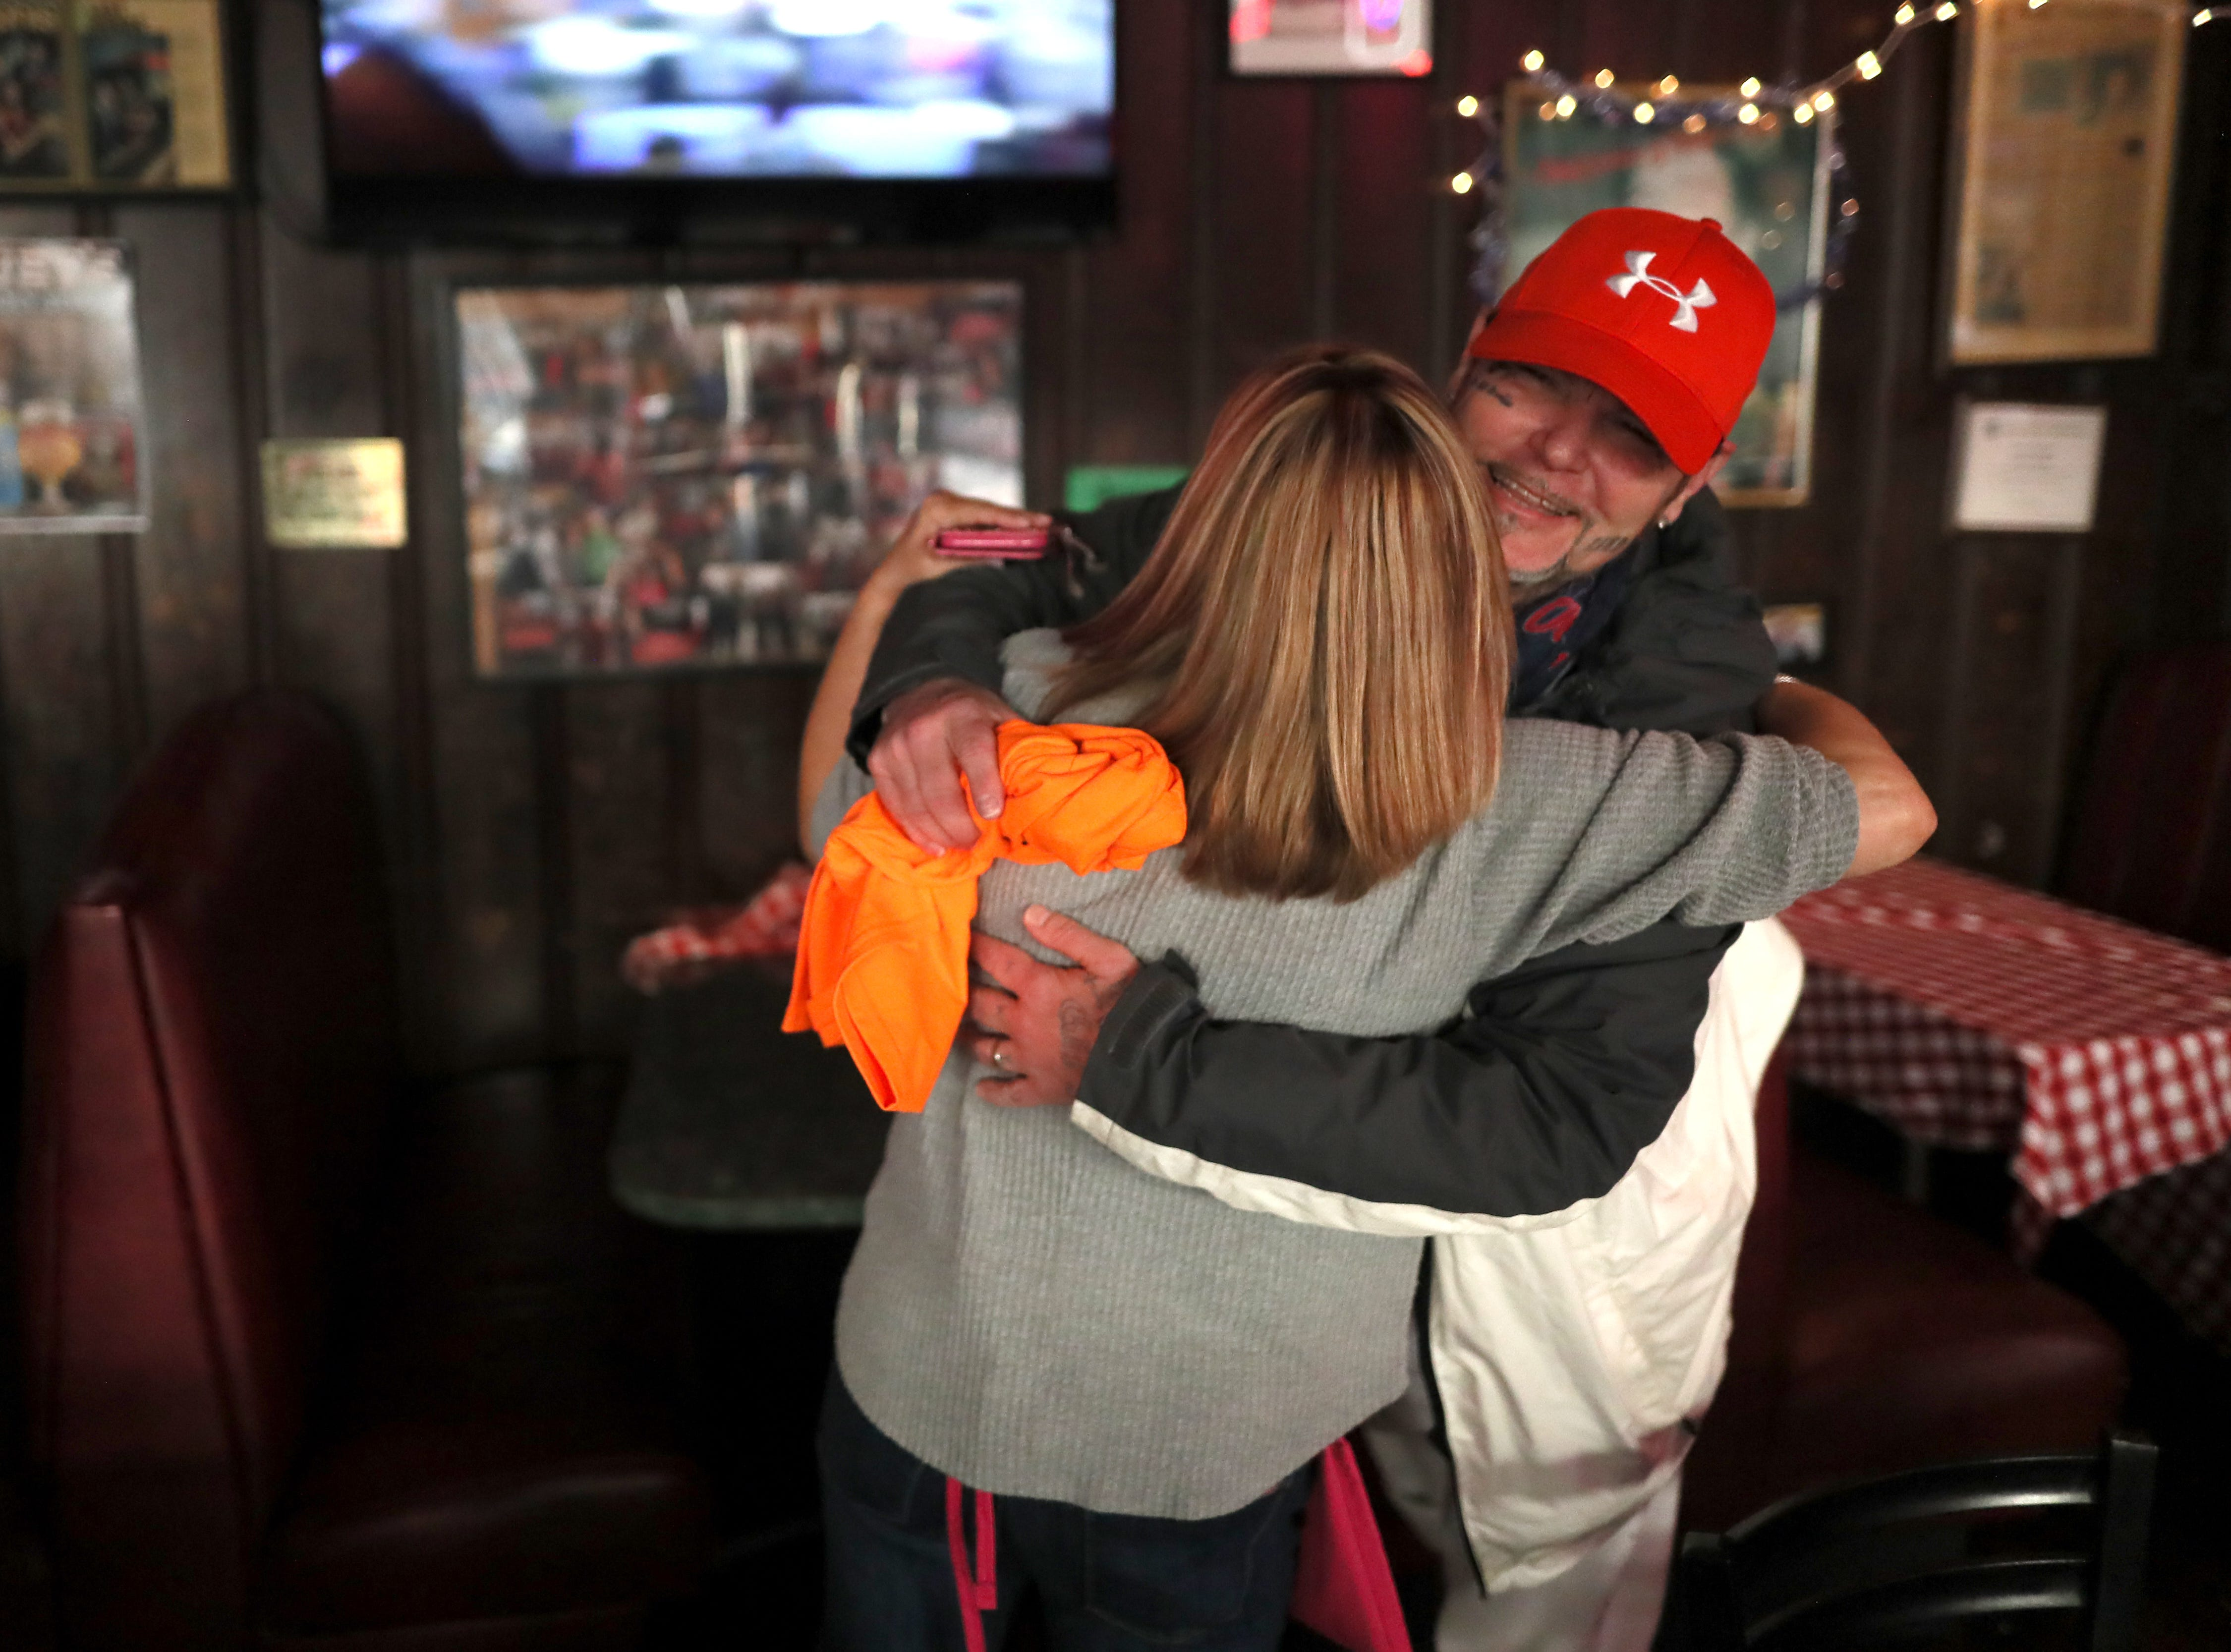 Joseph Marchisio hugs volunteer Sarah Nickell as she helps to serve free meals and hand out warm clothing at the Huey's Downtown restaurant on Christmas Day Tuesday, Dec. 25, 2018.